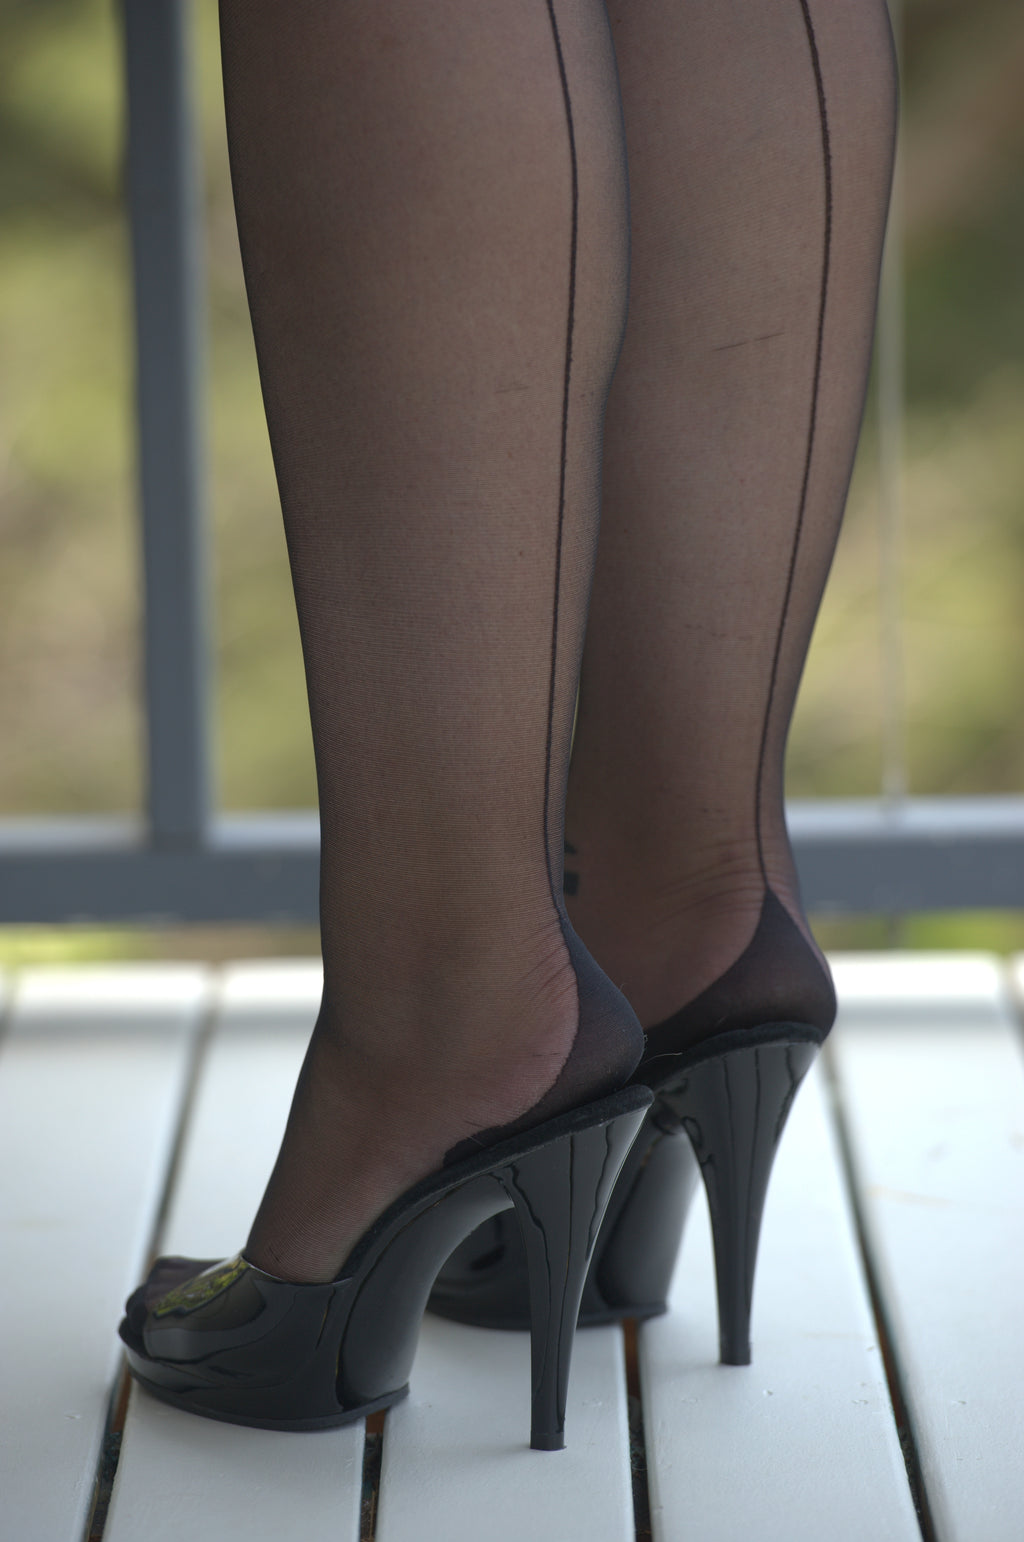 back view stockings